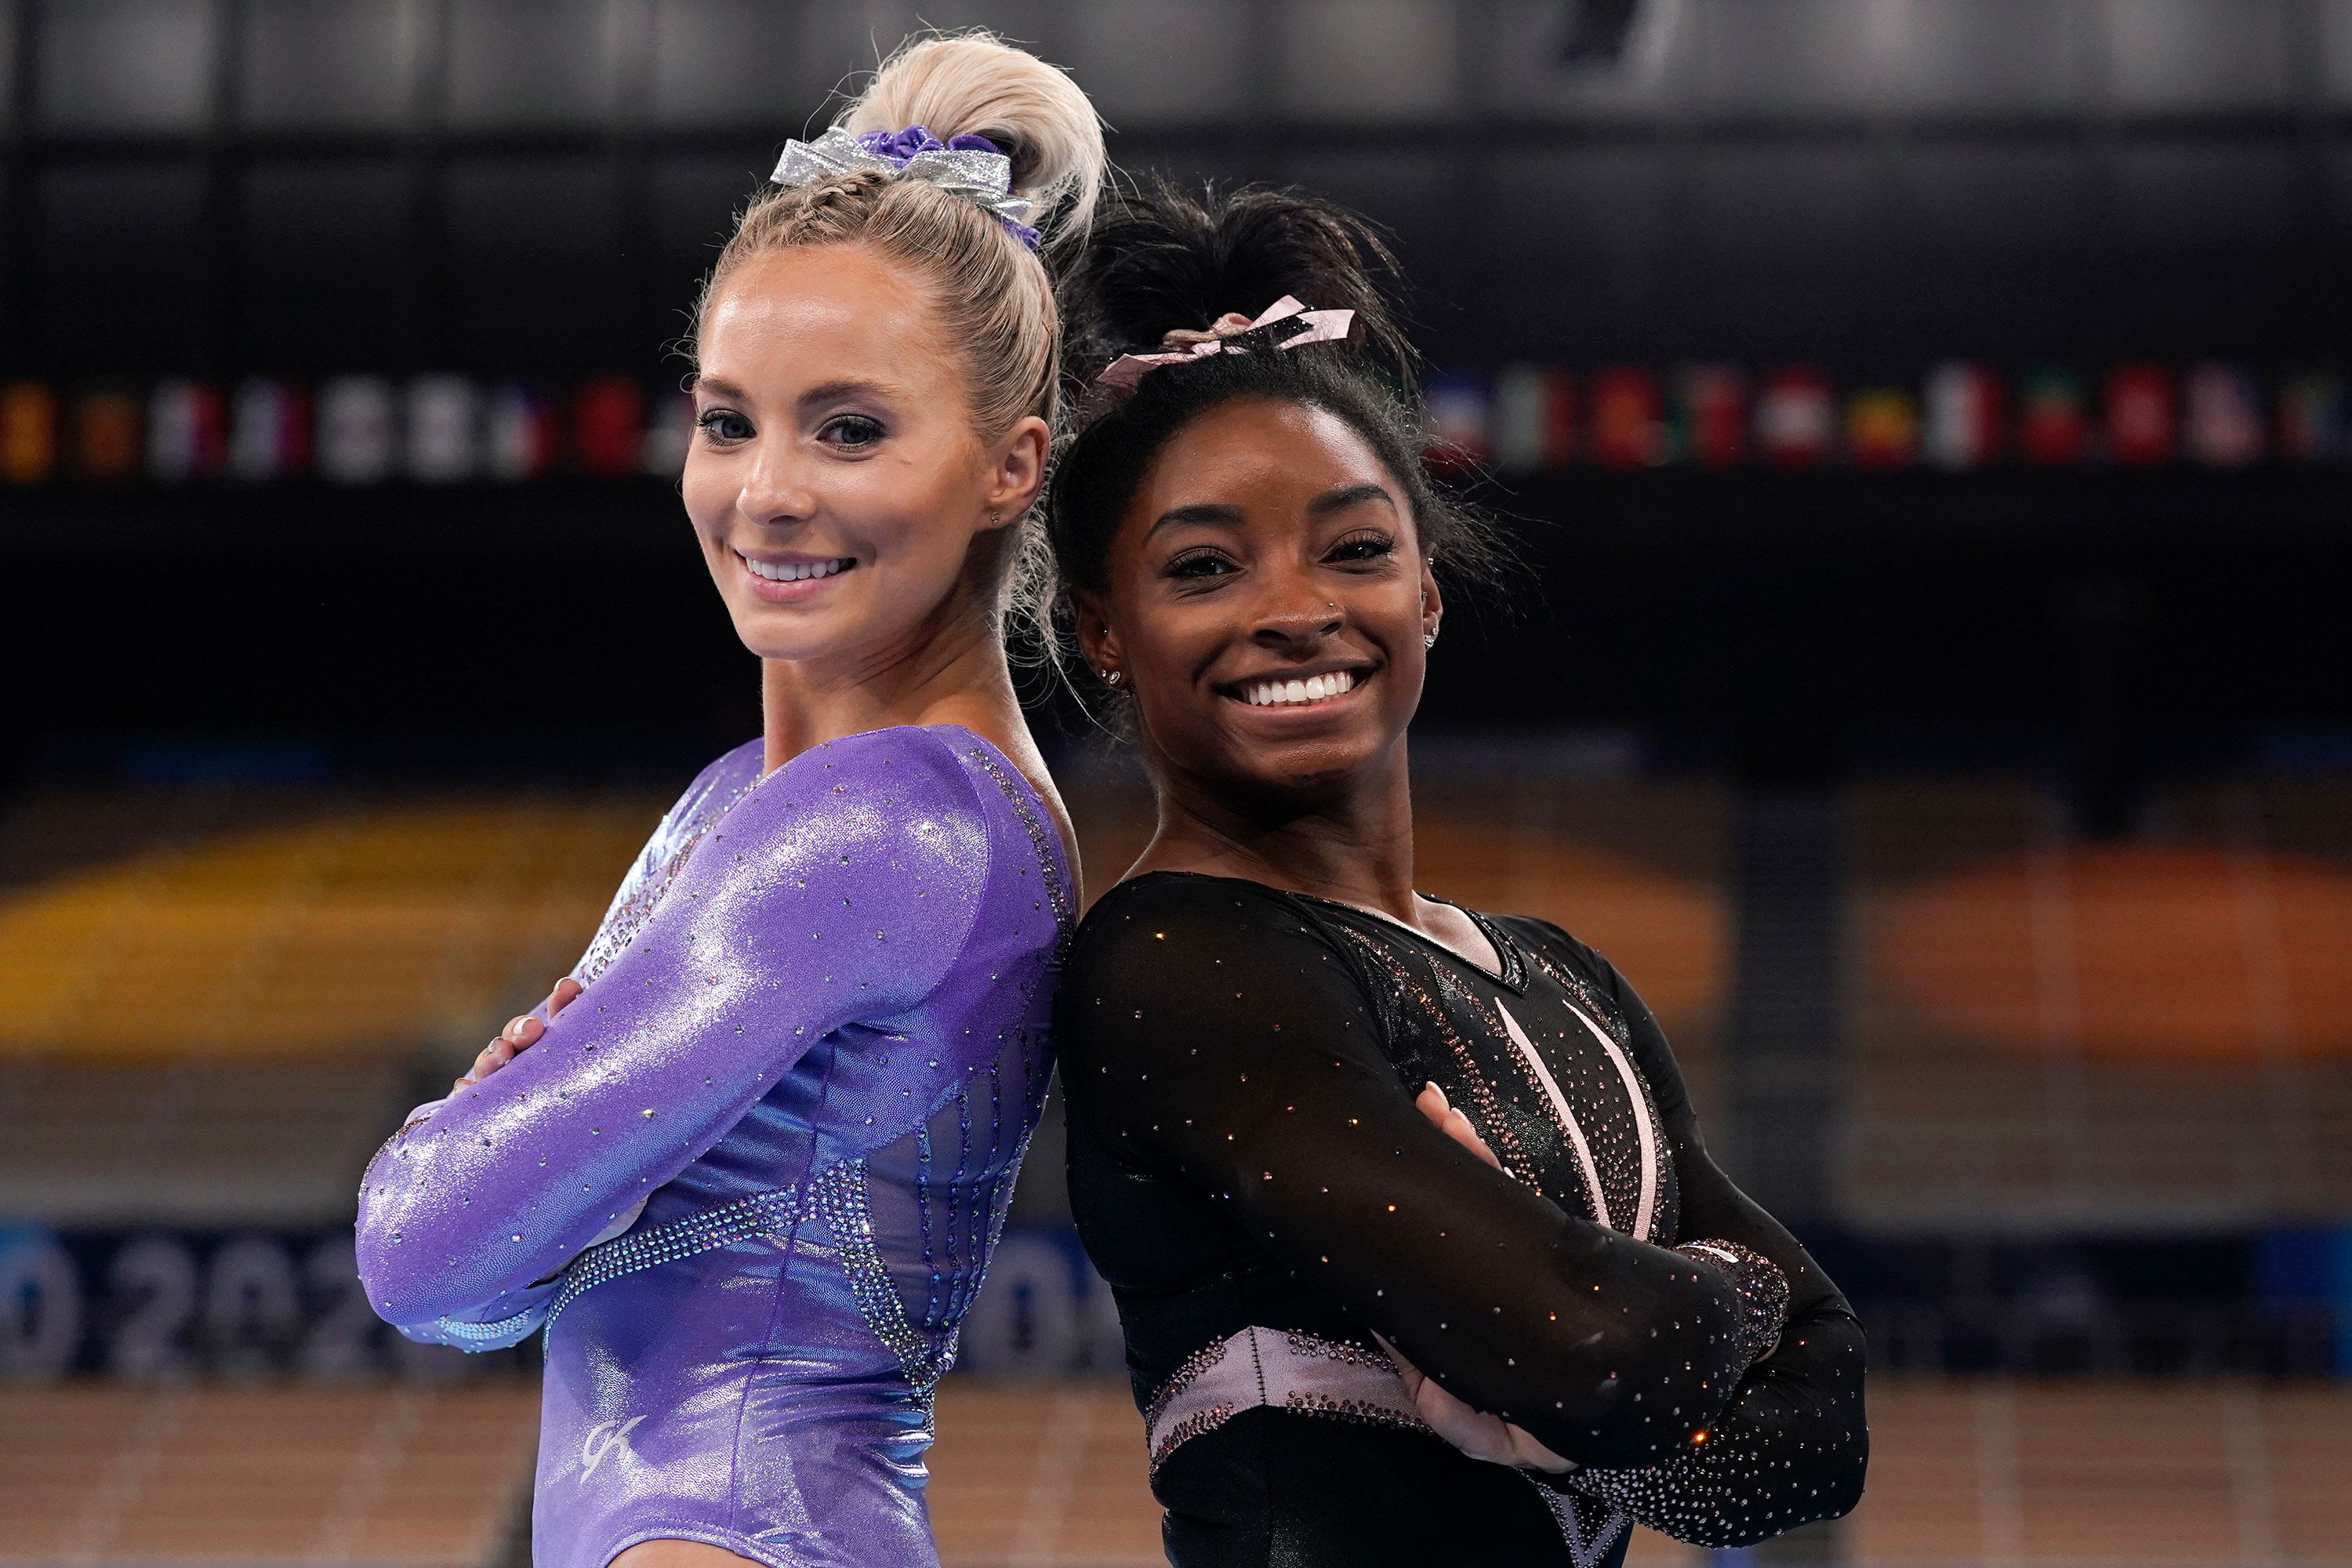 MyKayla Skinner and Simone Biles pose for pictures after a practice session on July 22.